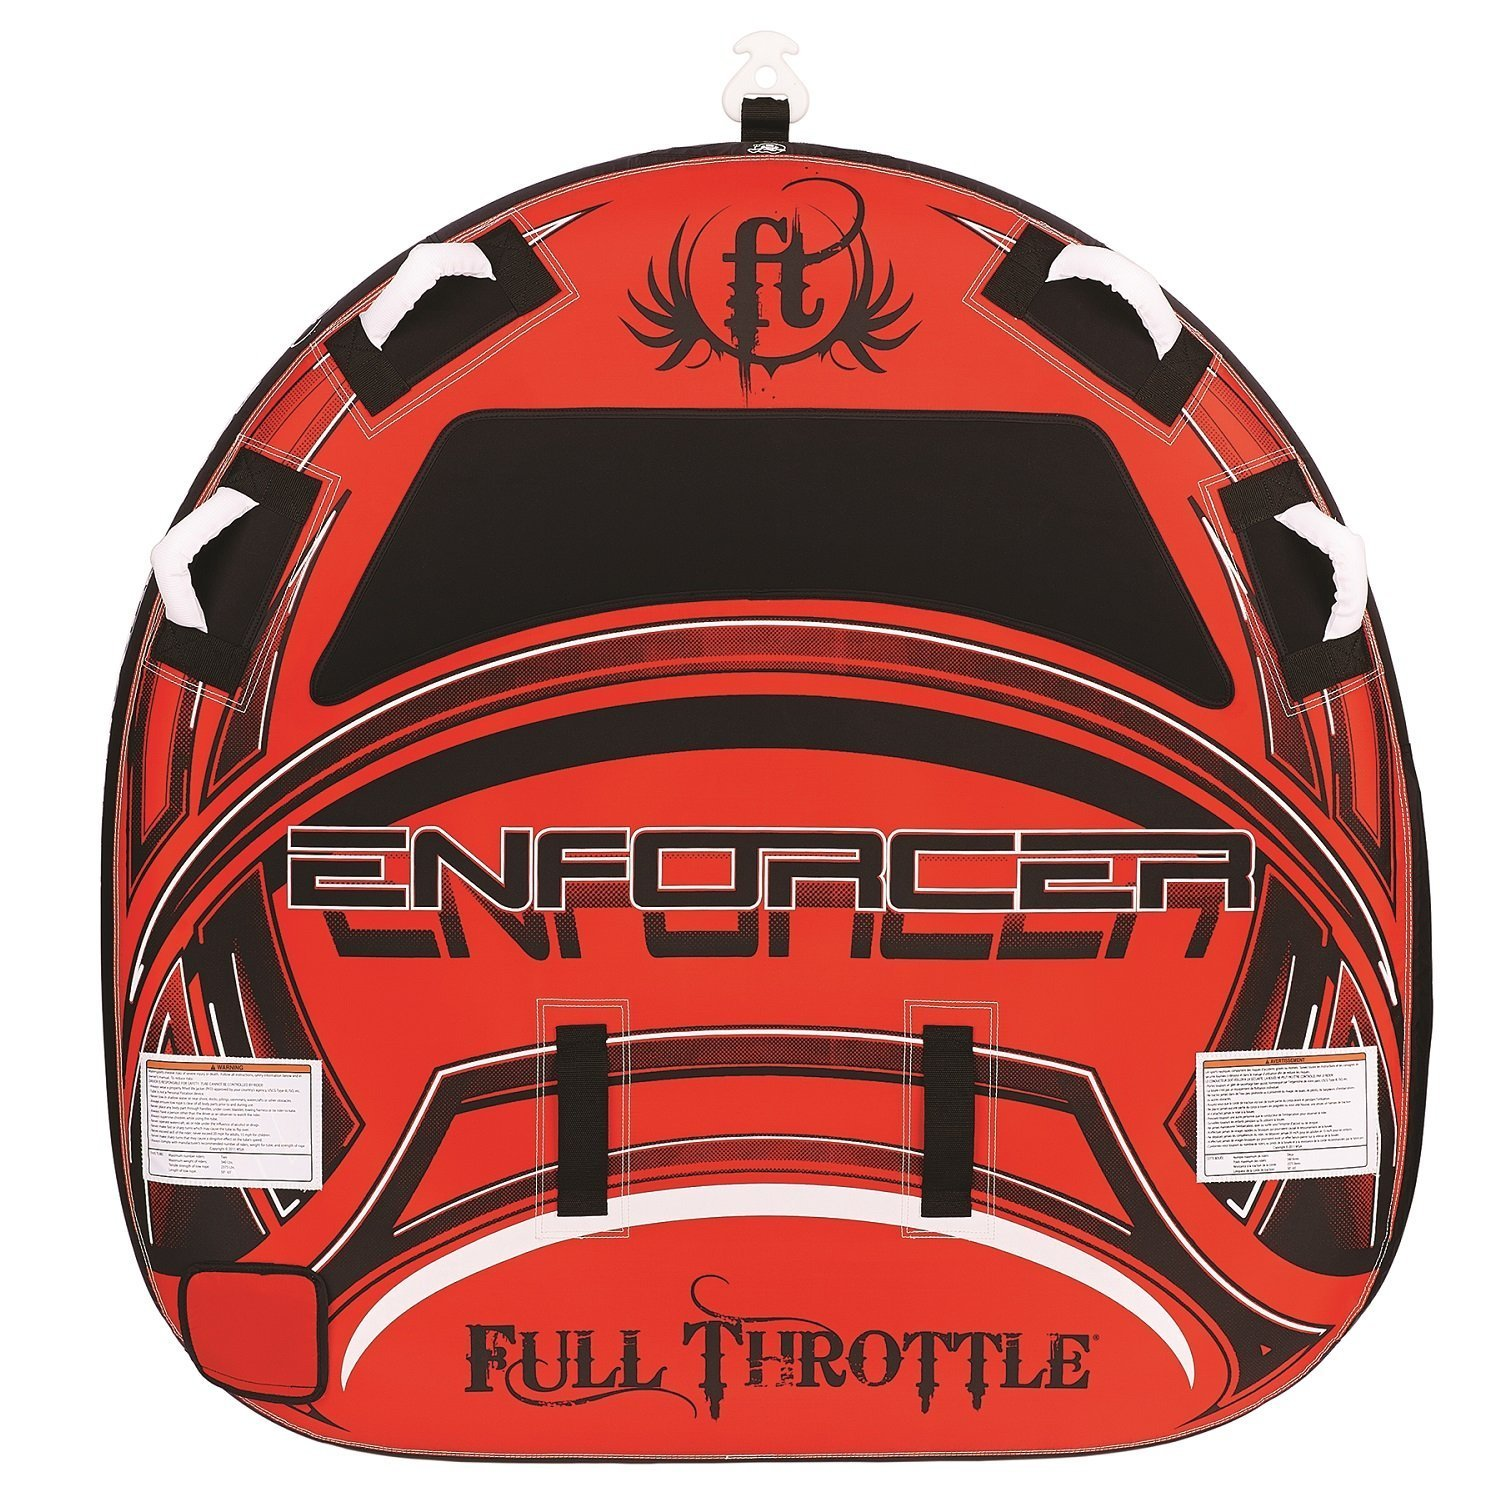 Full Throttle Enforcer Fully D-Shaped Tube 赤 60-Inch [並行輸入品]